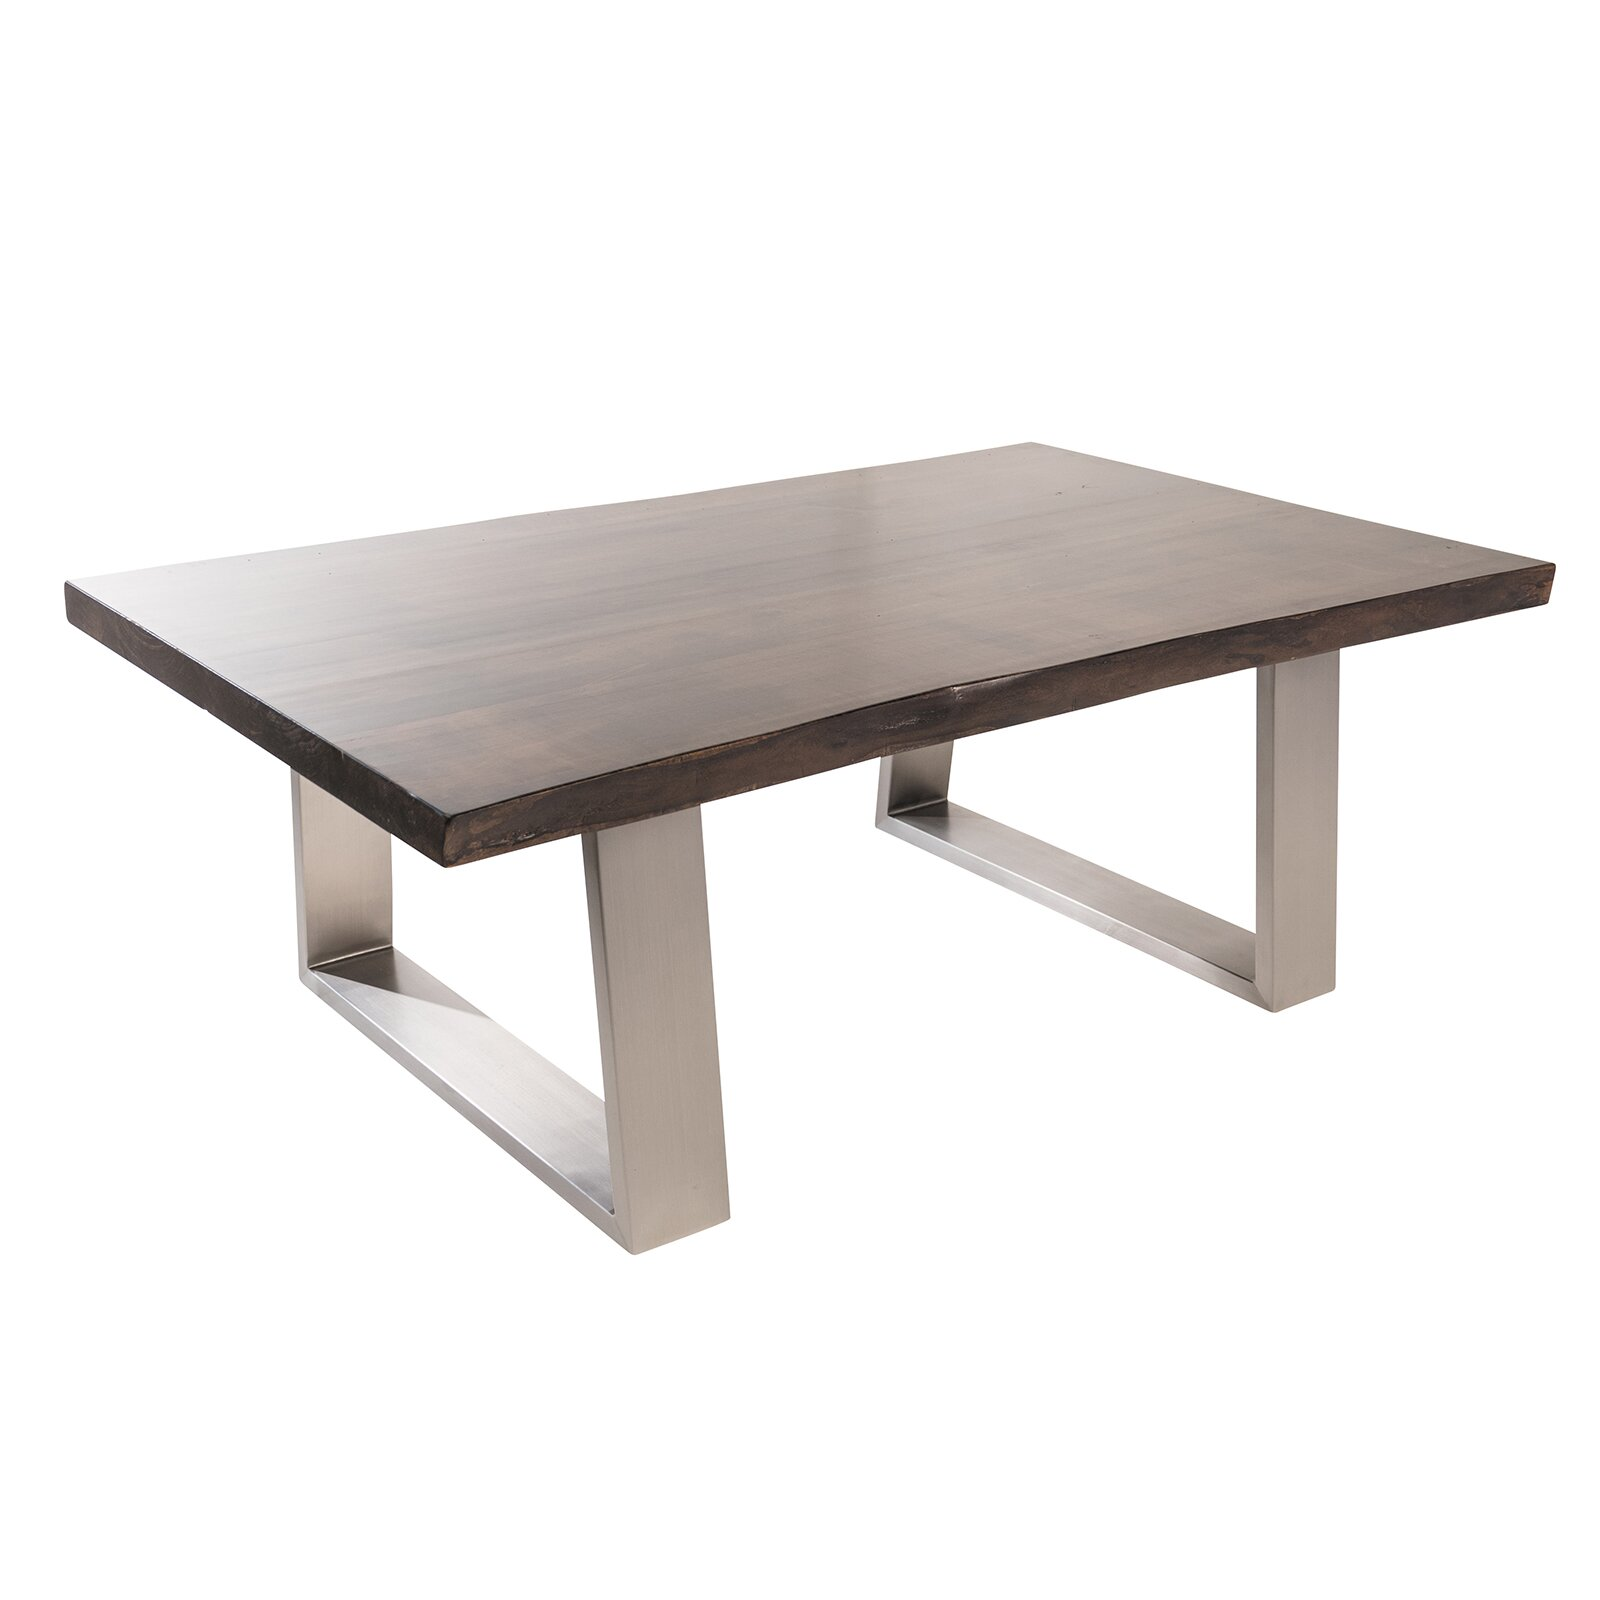 Joseph Allen Live Edge Coffee Table | Wayfair